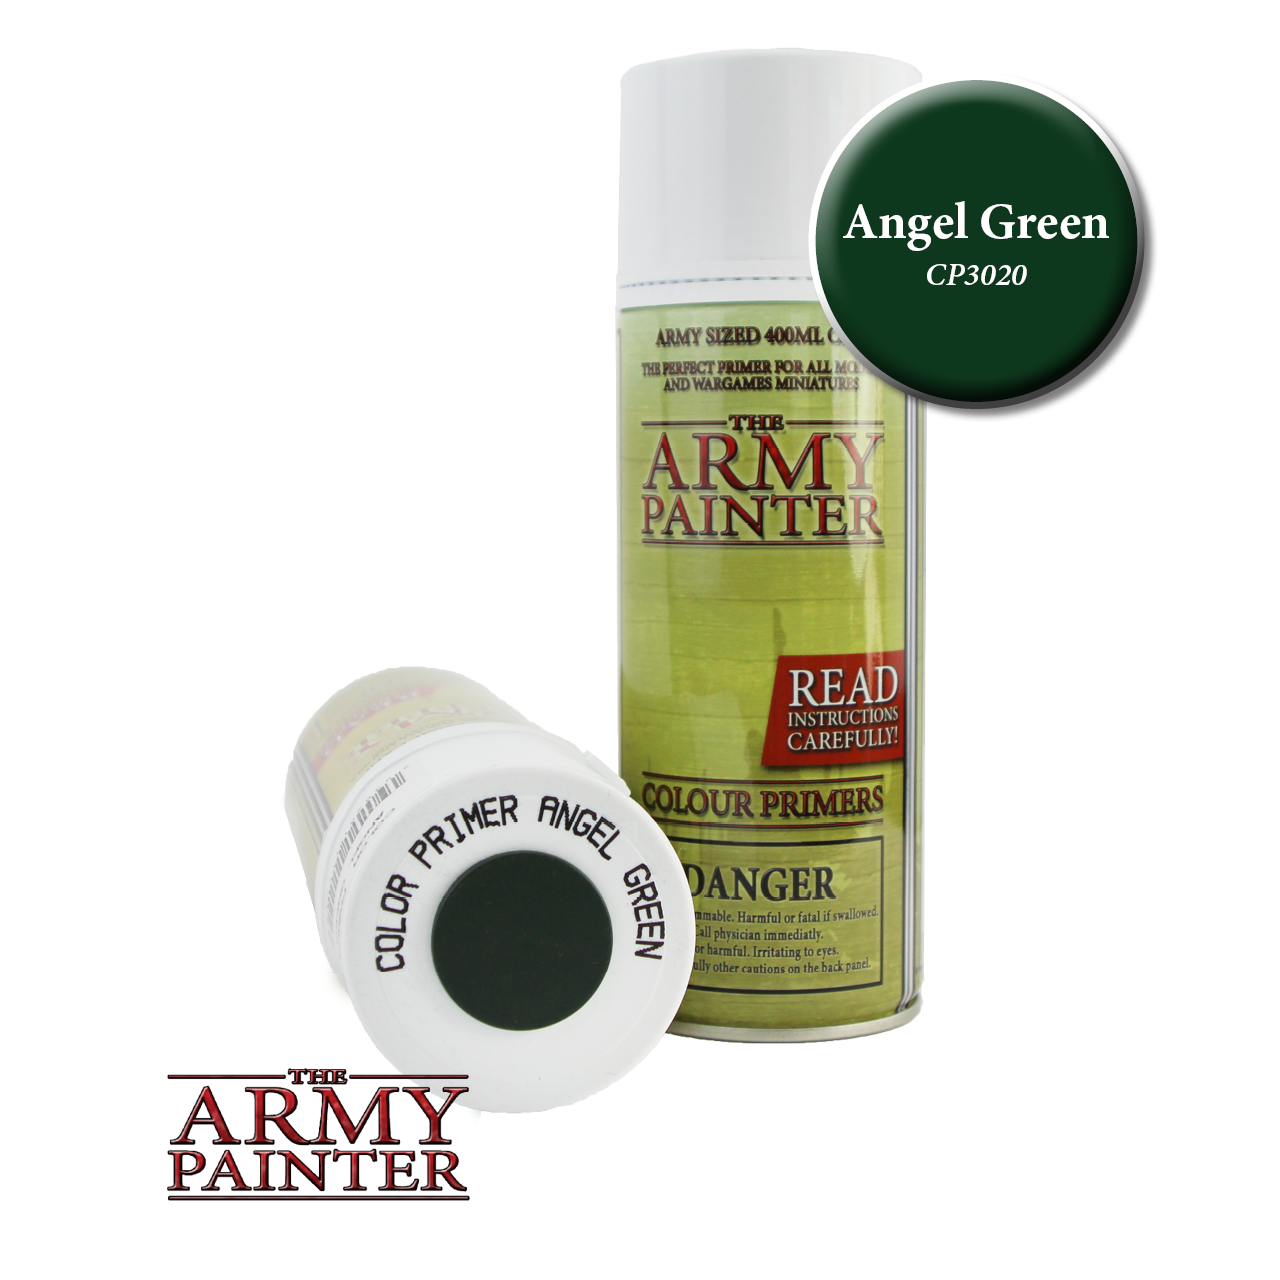 Army Painter - Spray Primer - Angel Green (Pickup Only) | Elandrial Games Albany